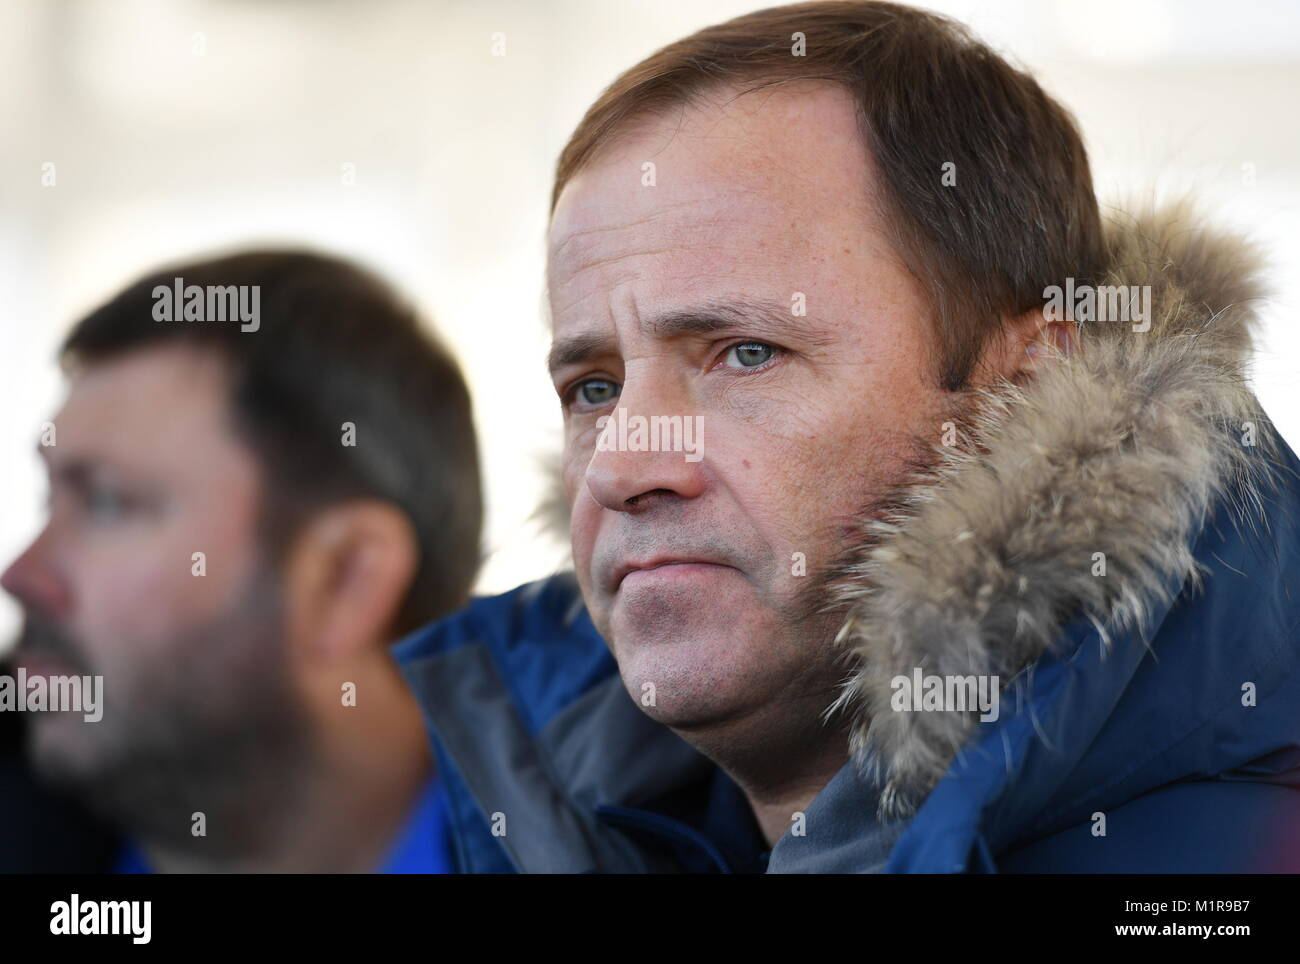 Russia. 01st Feb, 2018. AMUR REGION, RUSSIA - FEBRUARY 1, 2018: Russian Federal Space Agency (Roscosmos) Head Igor - Stock Image